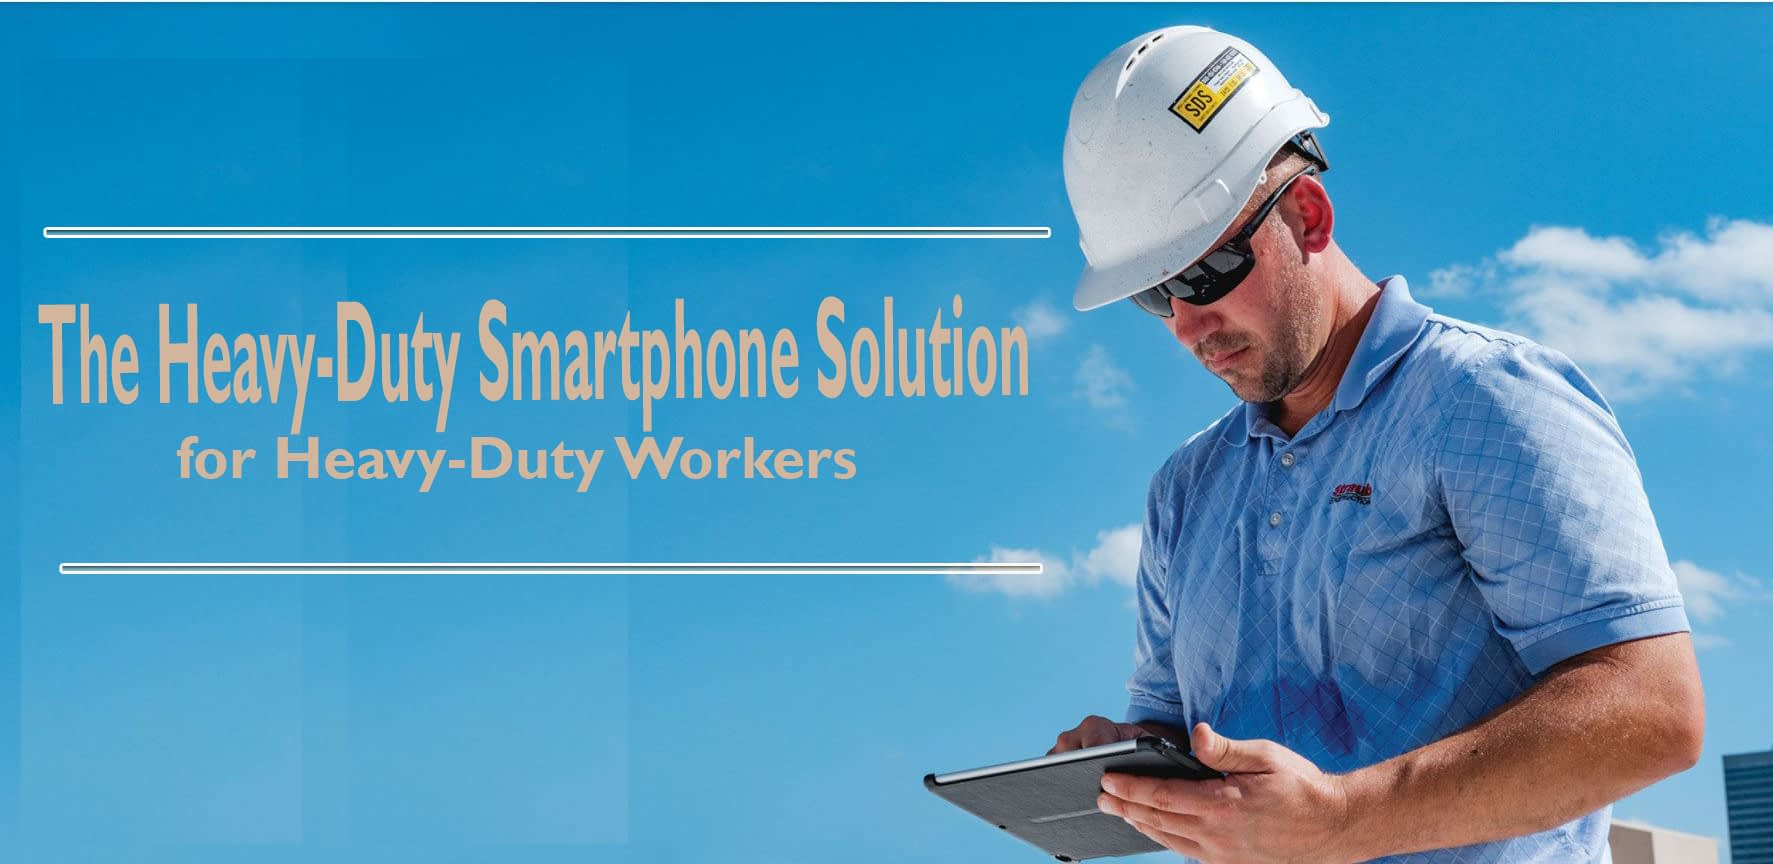 The Heavy-Duty Smartphone Solution for Heavy-Duty Workers